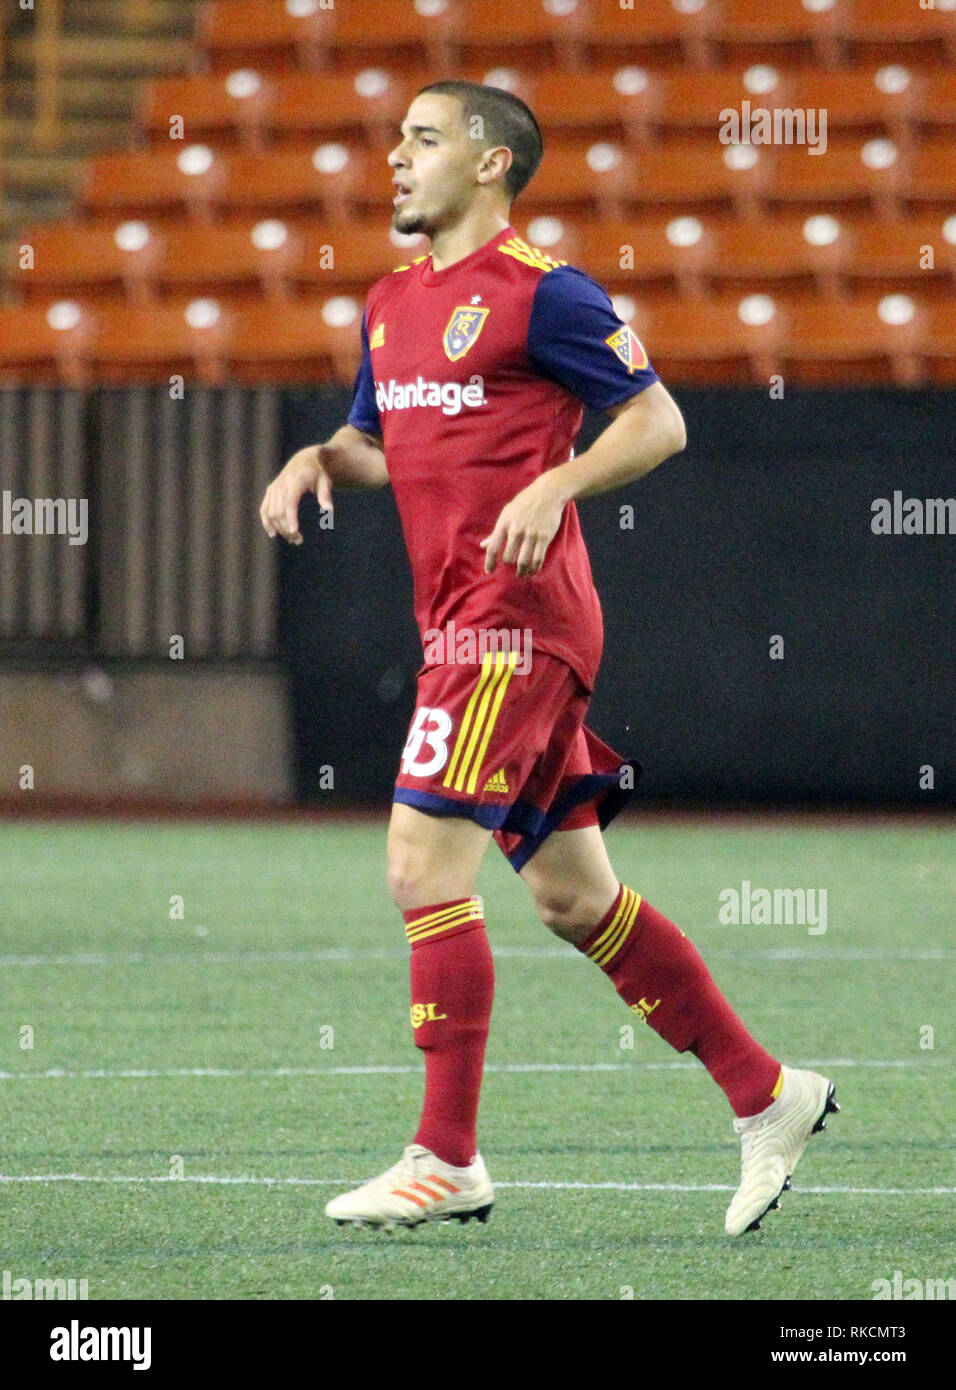 February 10, 2019 - Real Salt Lake midfielder Justin Portillo #43 during the Pacific Rim Cup championship match between V-Varen Nagasaki and Real Salt Lake at Aloha Stadium in Honolulu, HI - Michael Sullivan/CSM - Stock Image